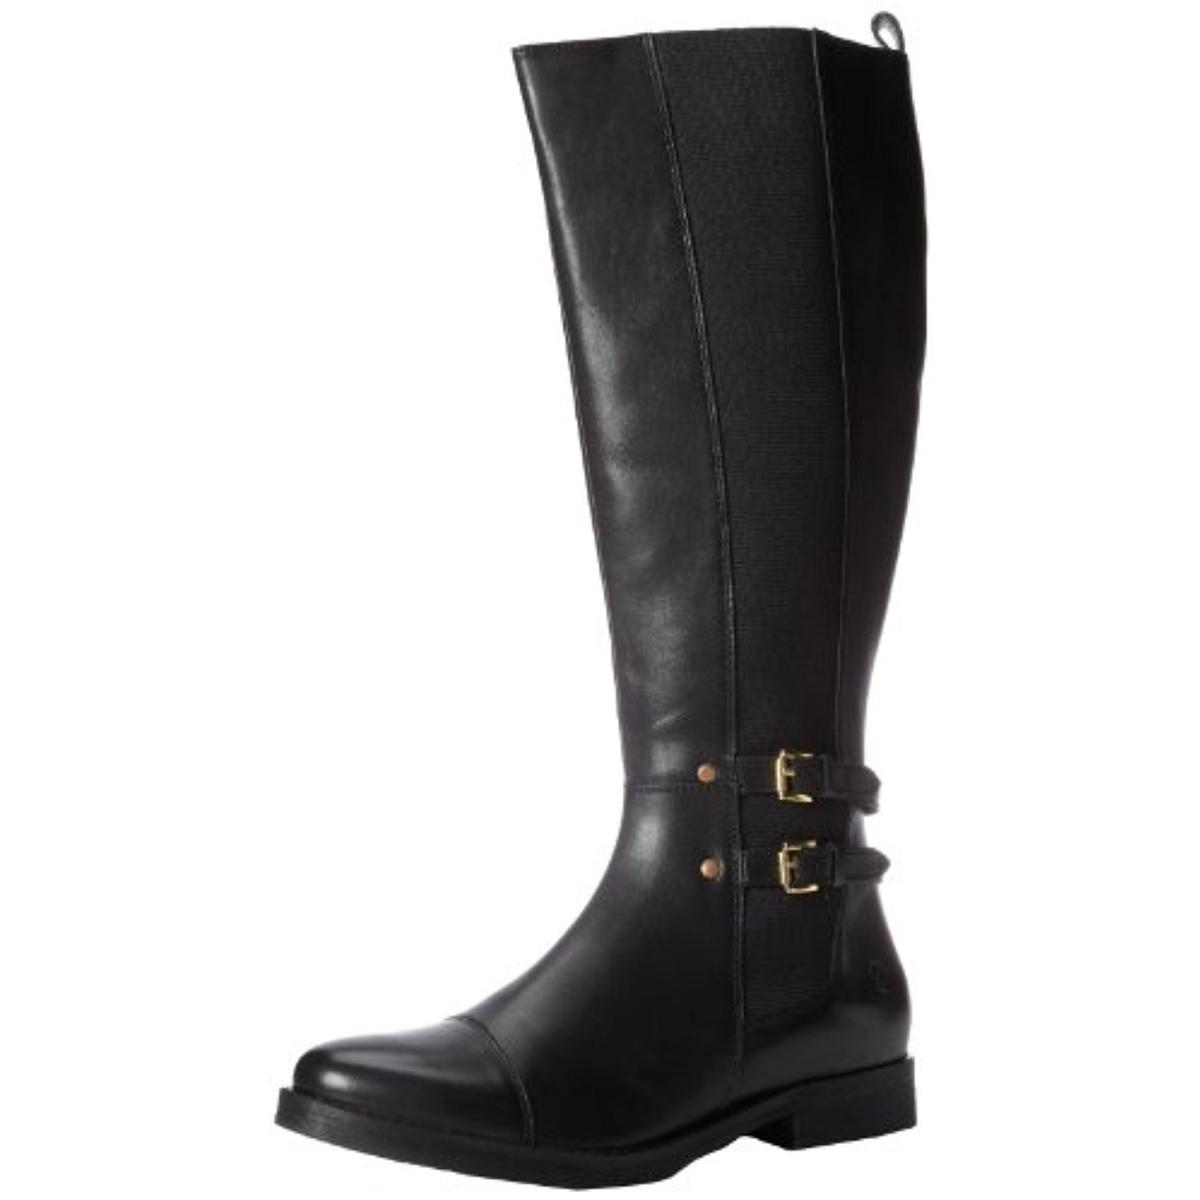 Bronx Womens Loop Hole Leather Knee-High Riding Boots by Bronx